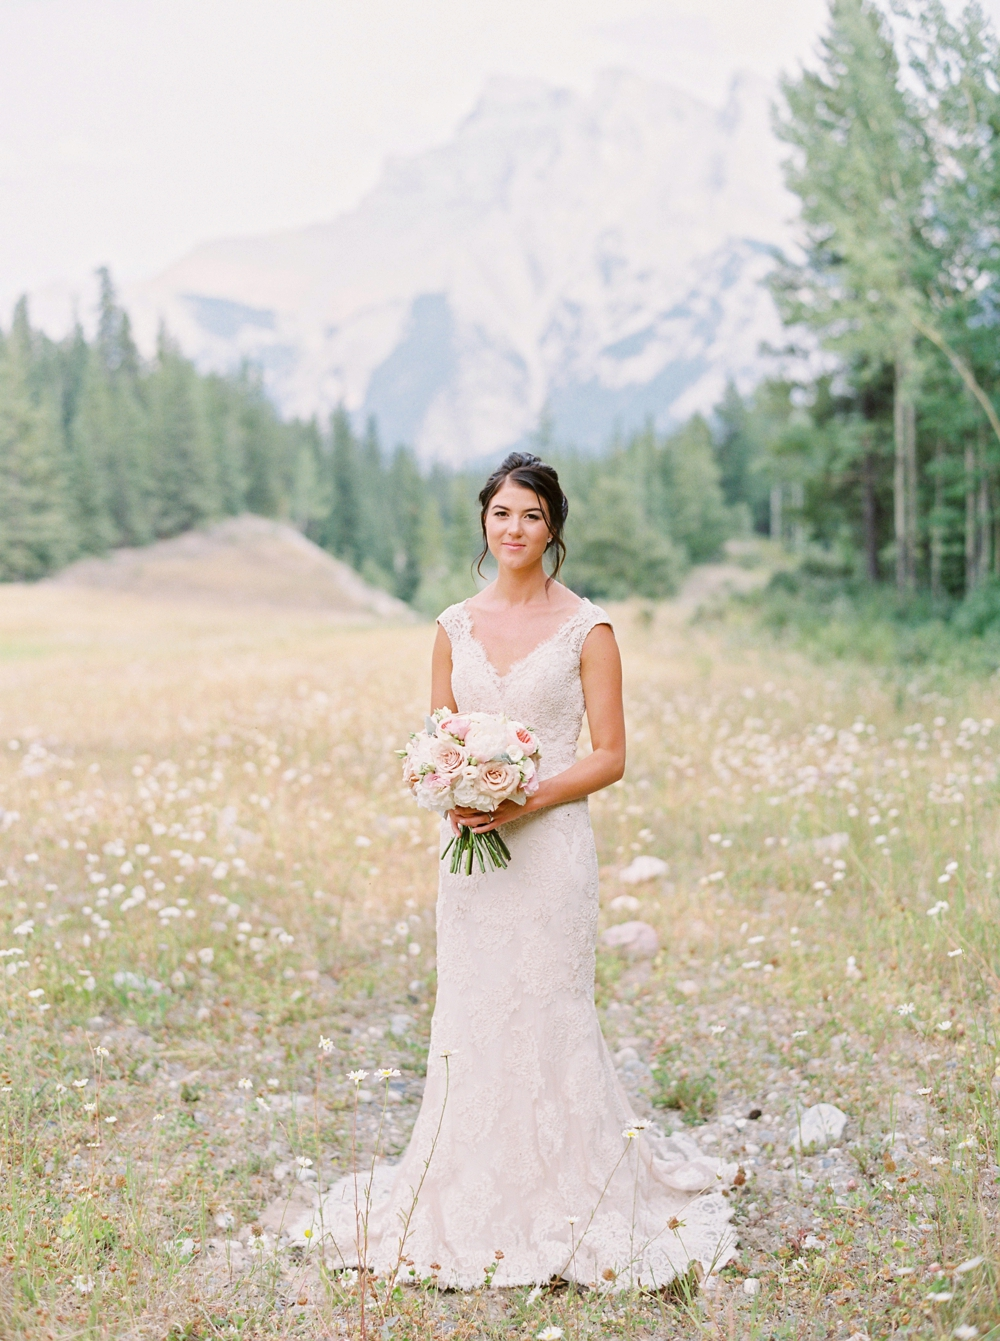 bride and groom portrait | Banff springs wedding photographers | fairmont banff rocky mountain wedding | Justine Milton fine art film Photography